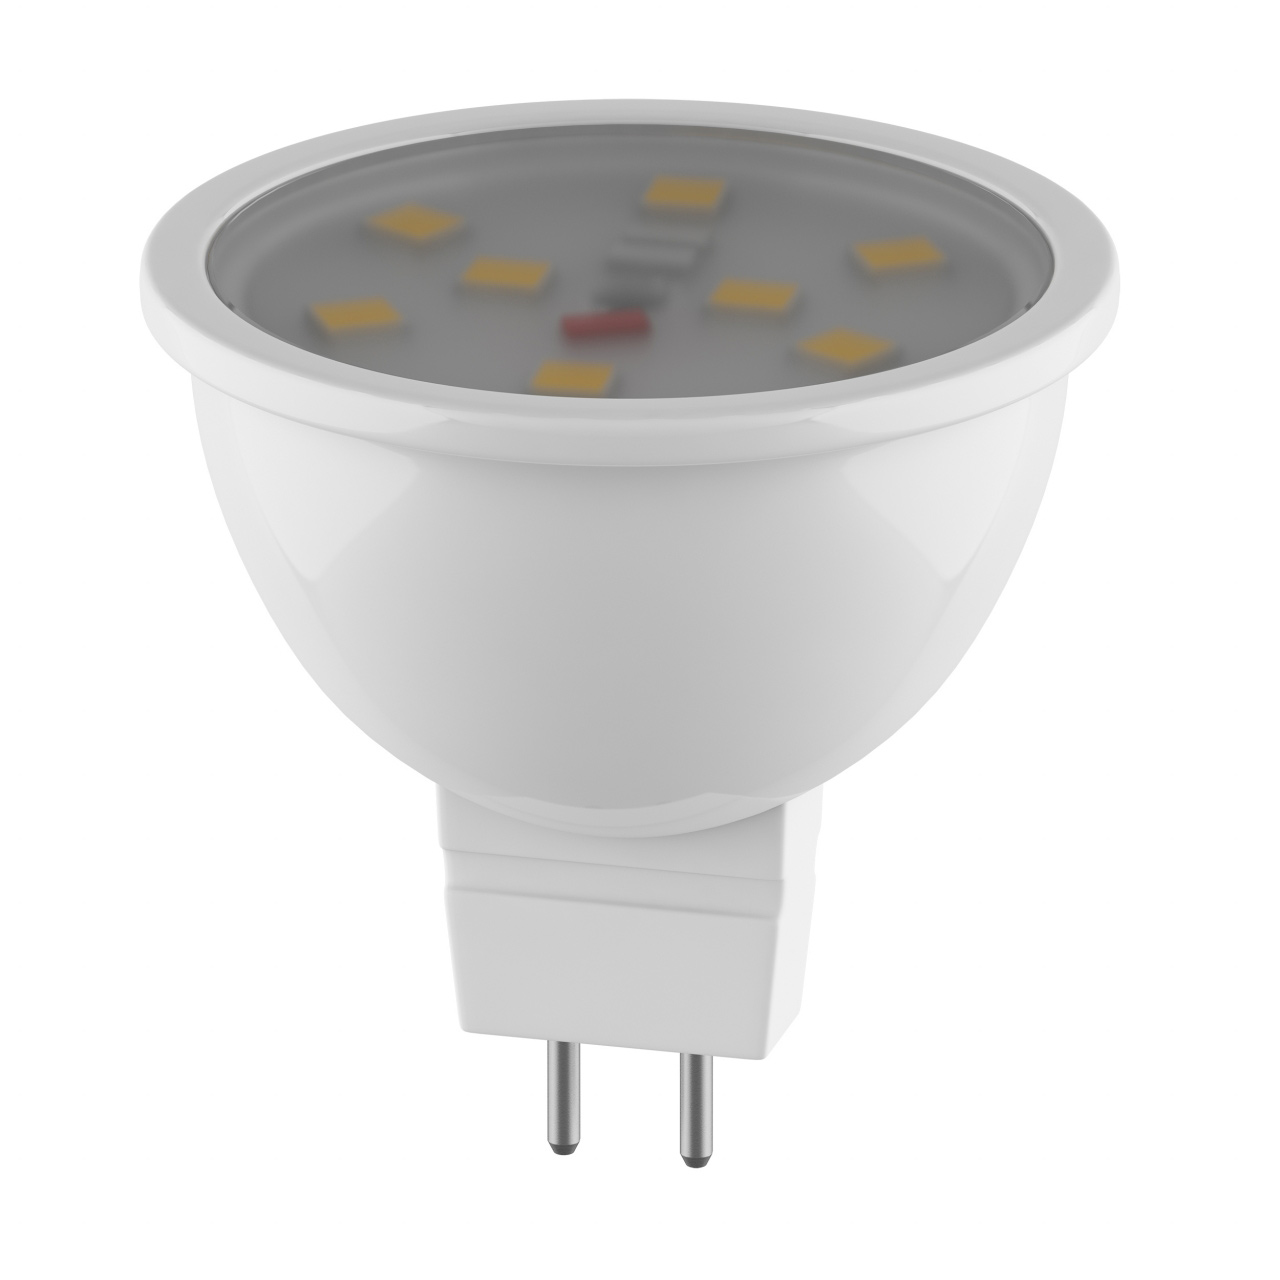 Светодиодная LED лампа G5.3, 220V MR11 3W - 4000K, Lightstar 940904